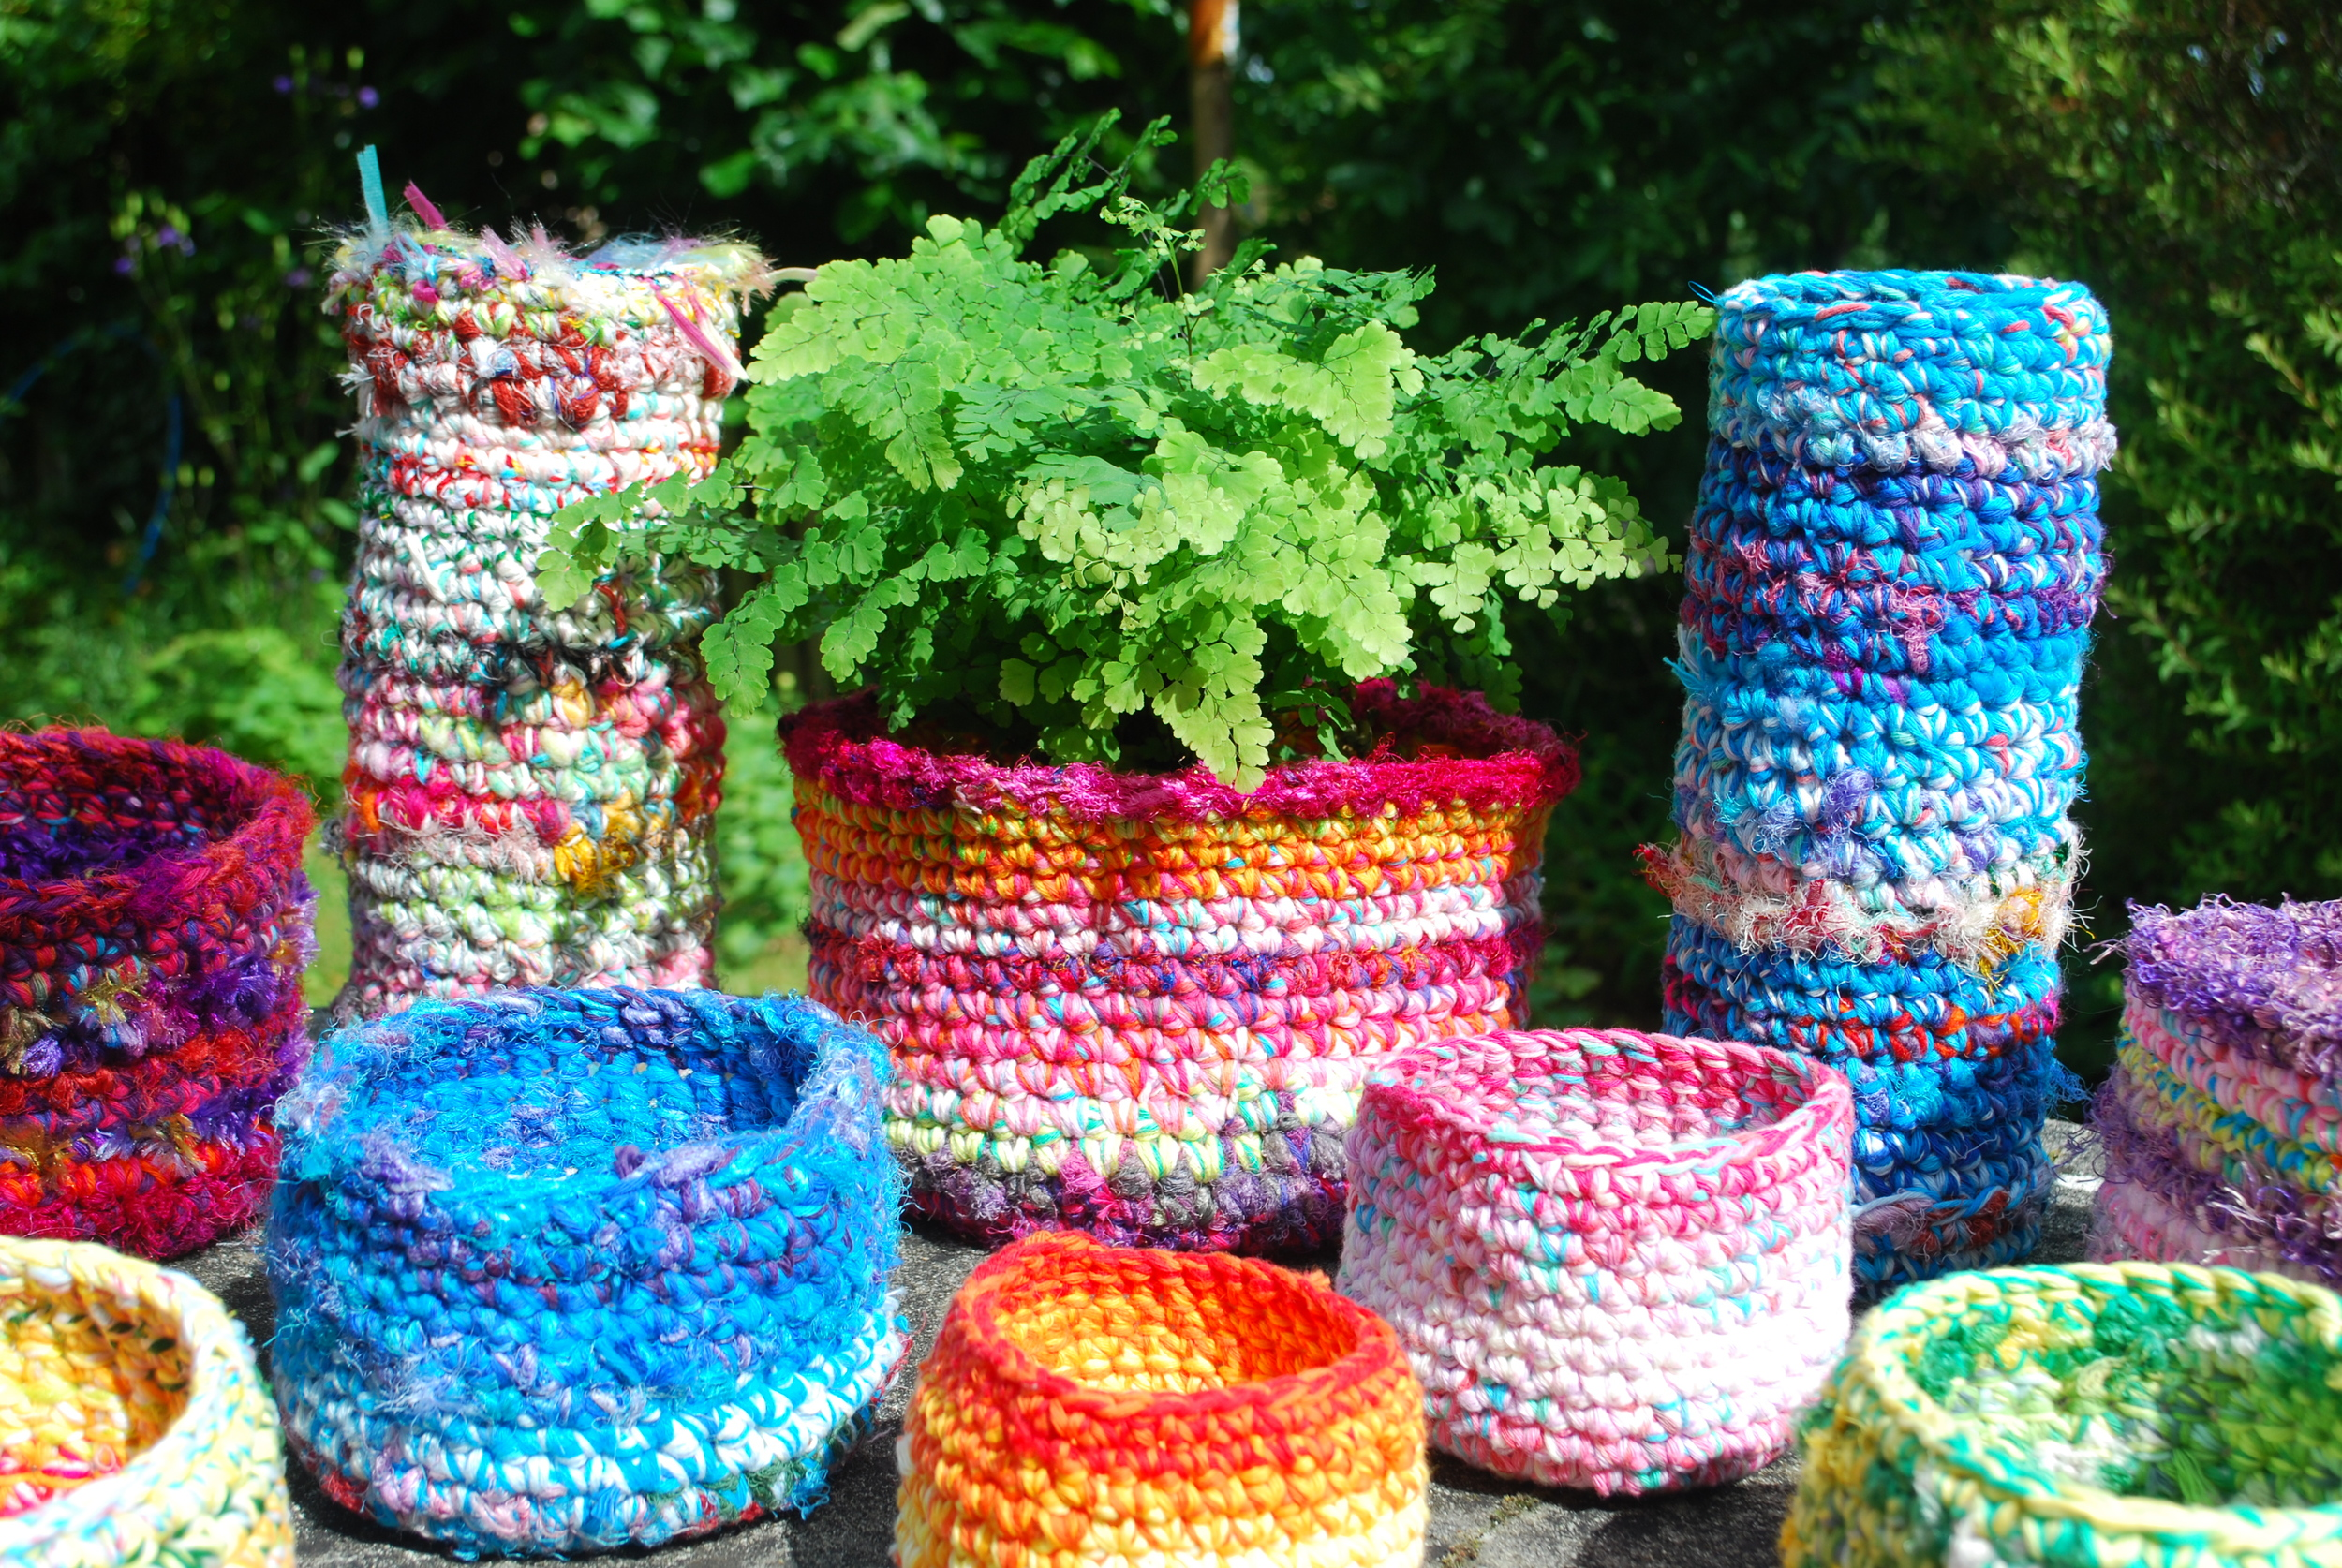 One pattern makes all these crochet baskets